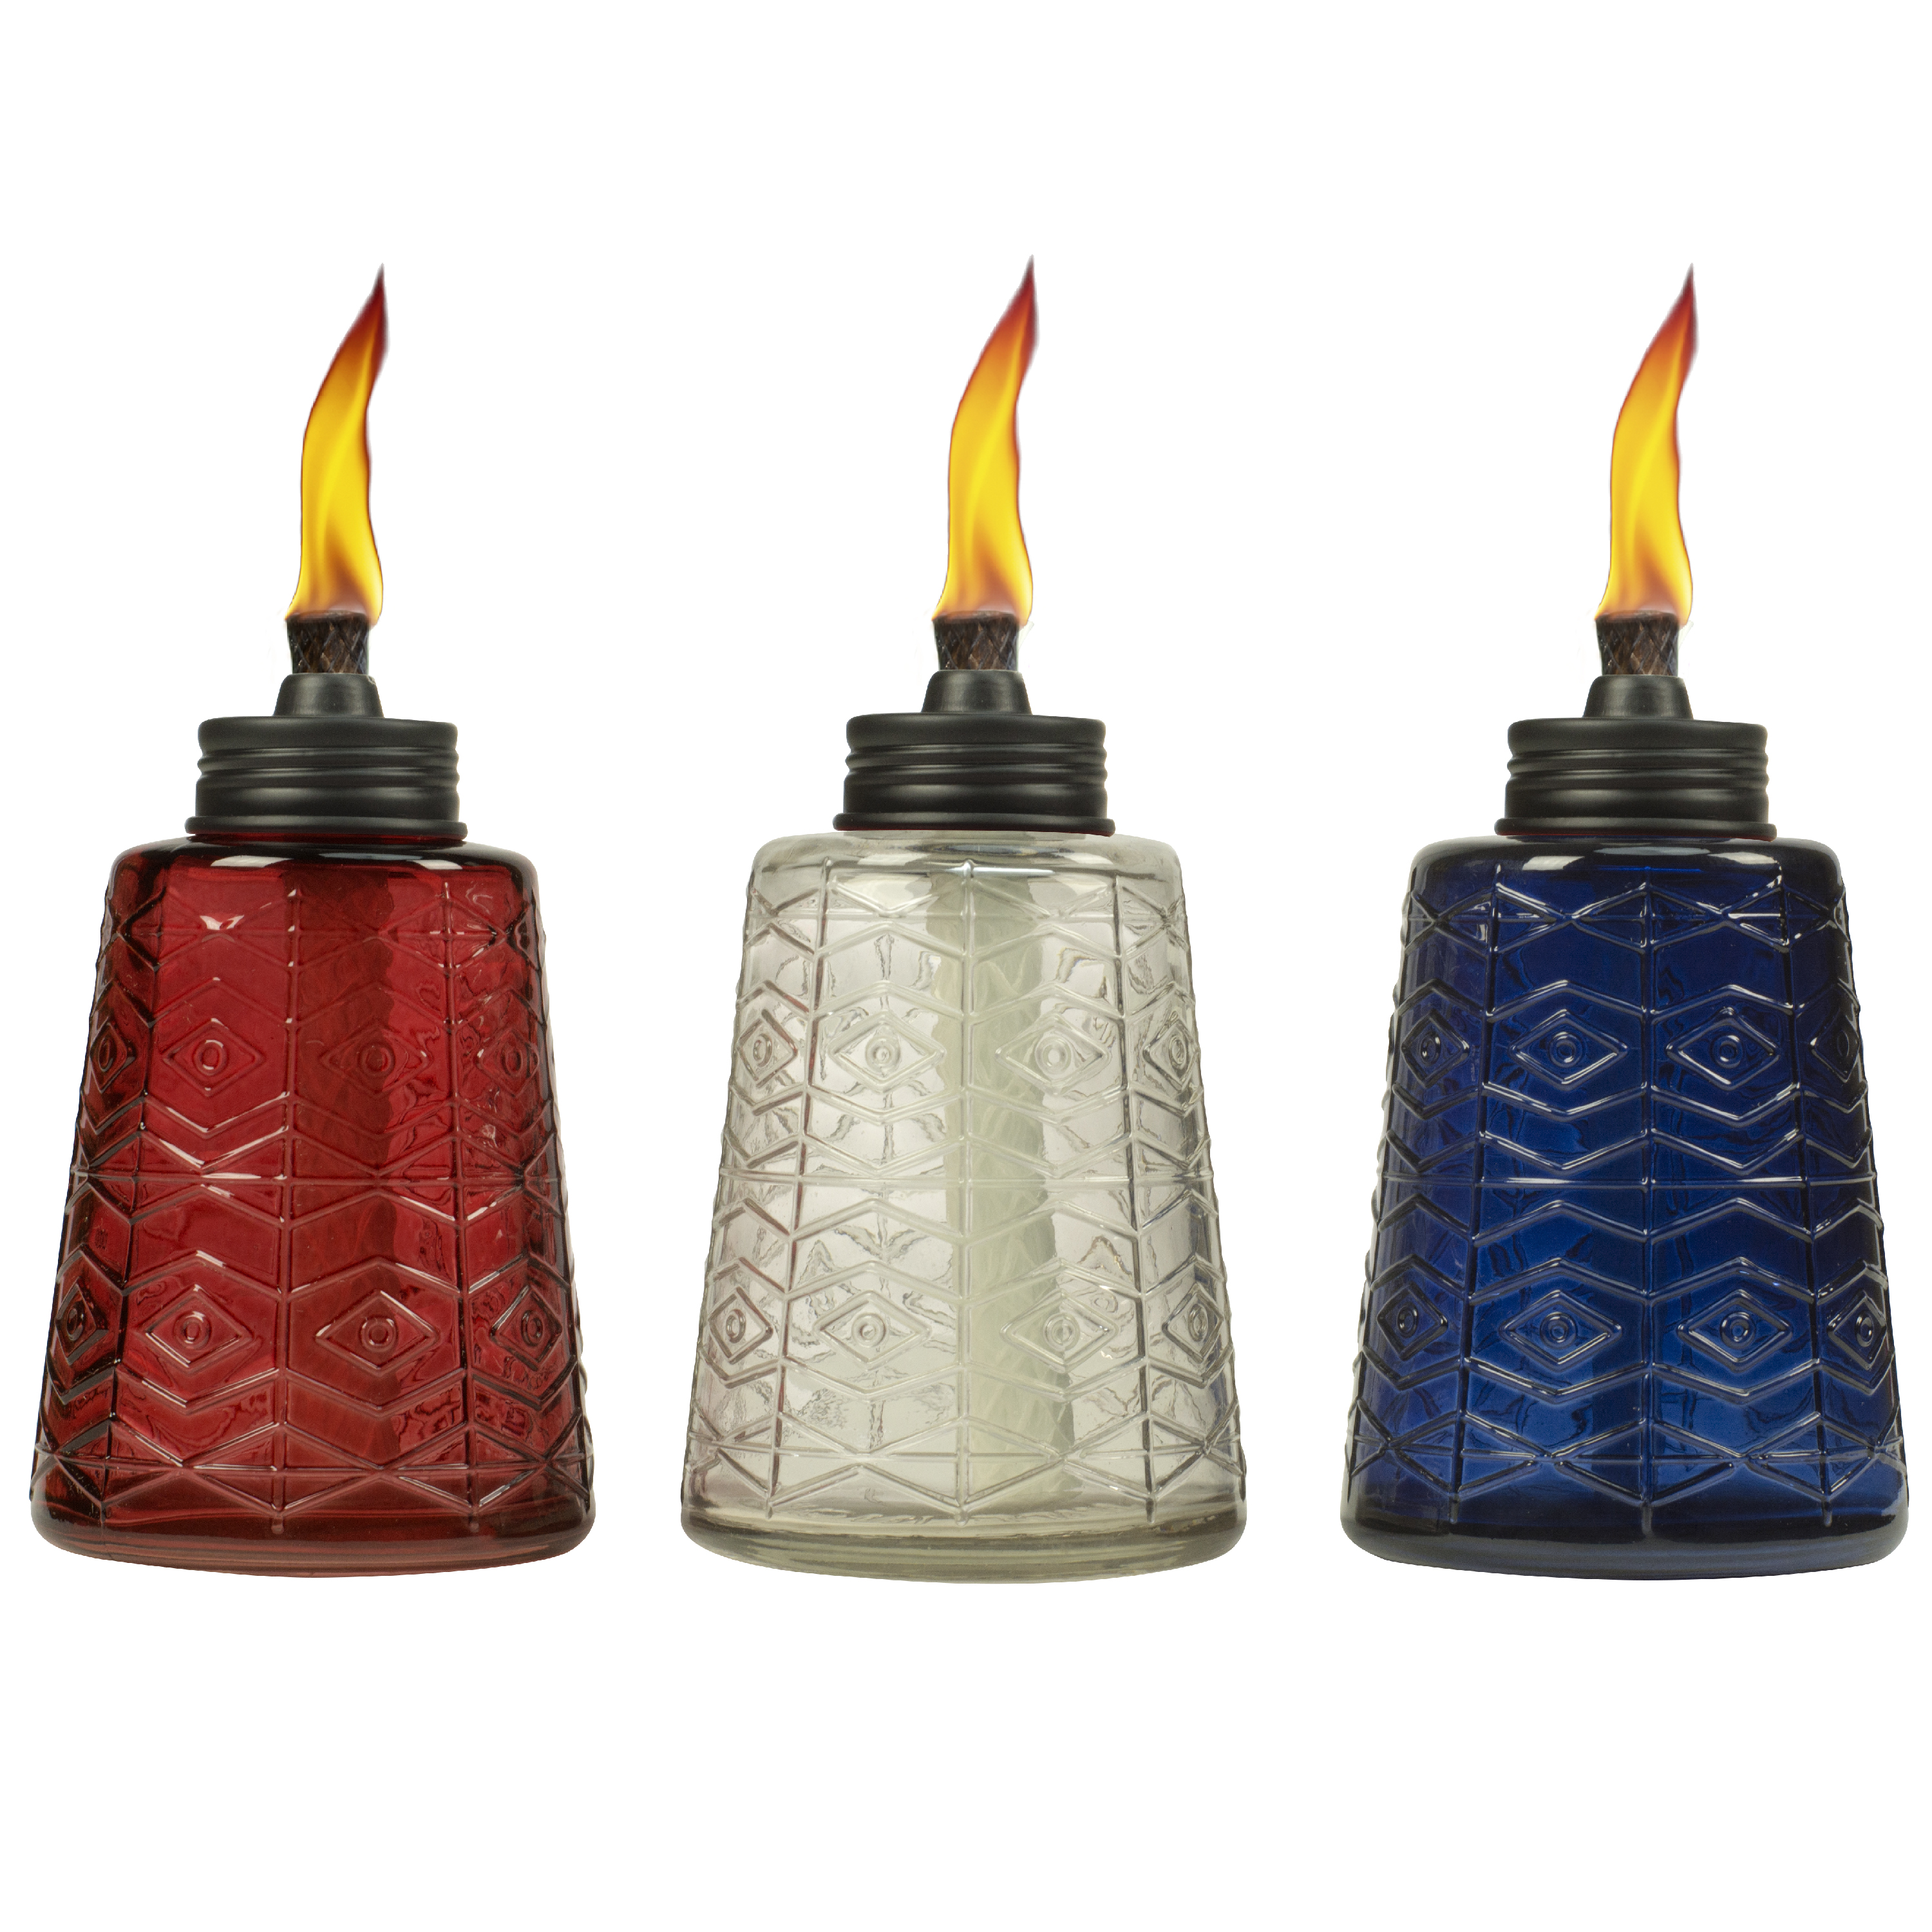 TIKI® Brand 6-inch Molded Glass Table Torch Red, White and Blue Assorted Colors 3-pack